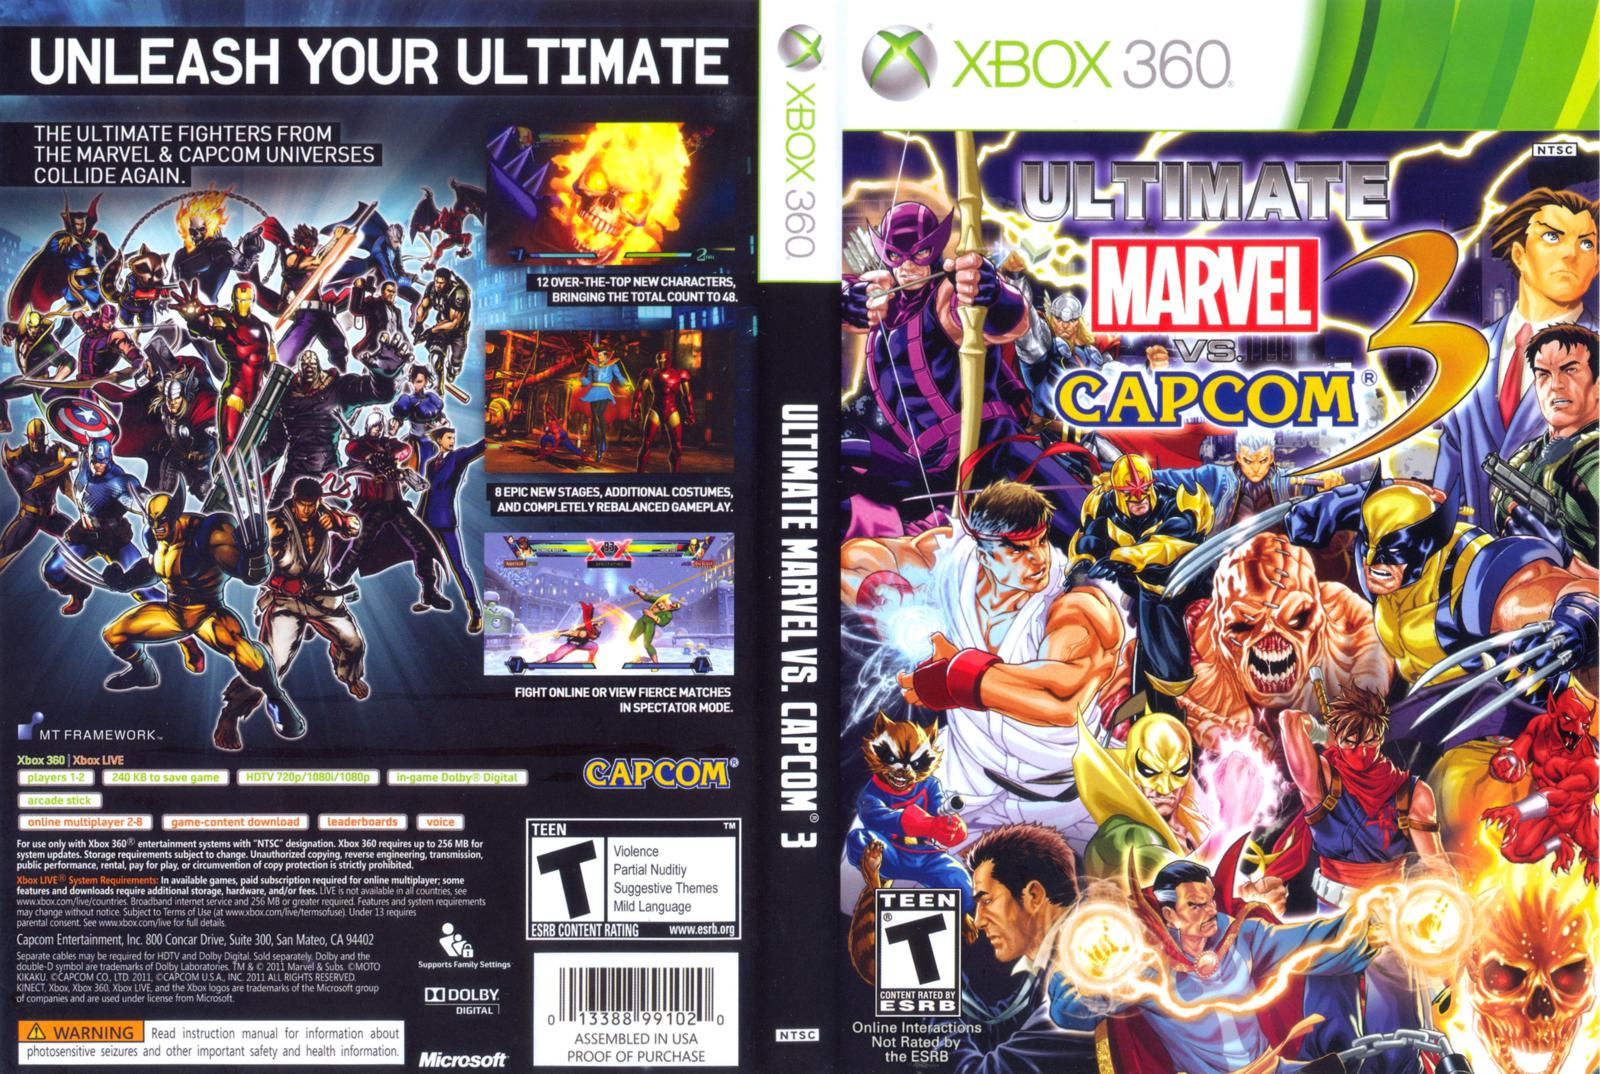 Capa ultimate marvel vs capcom 3 xbox 360